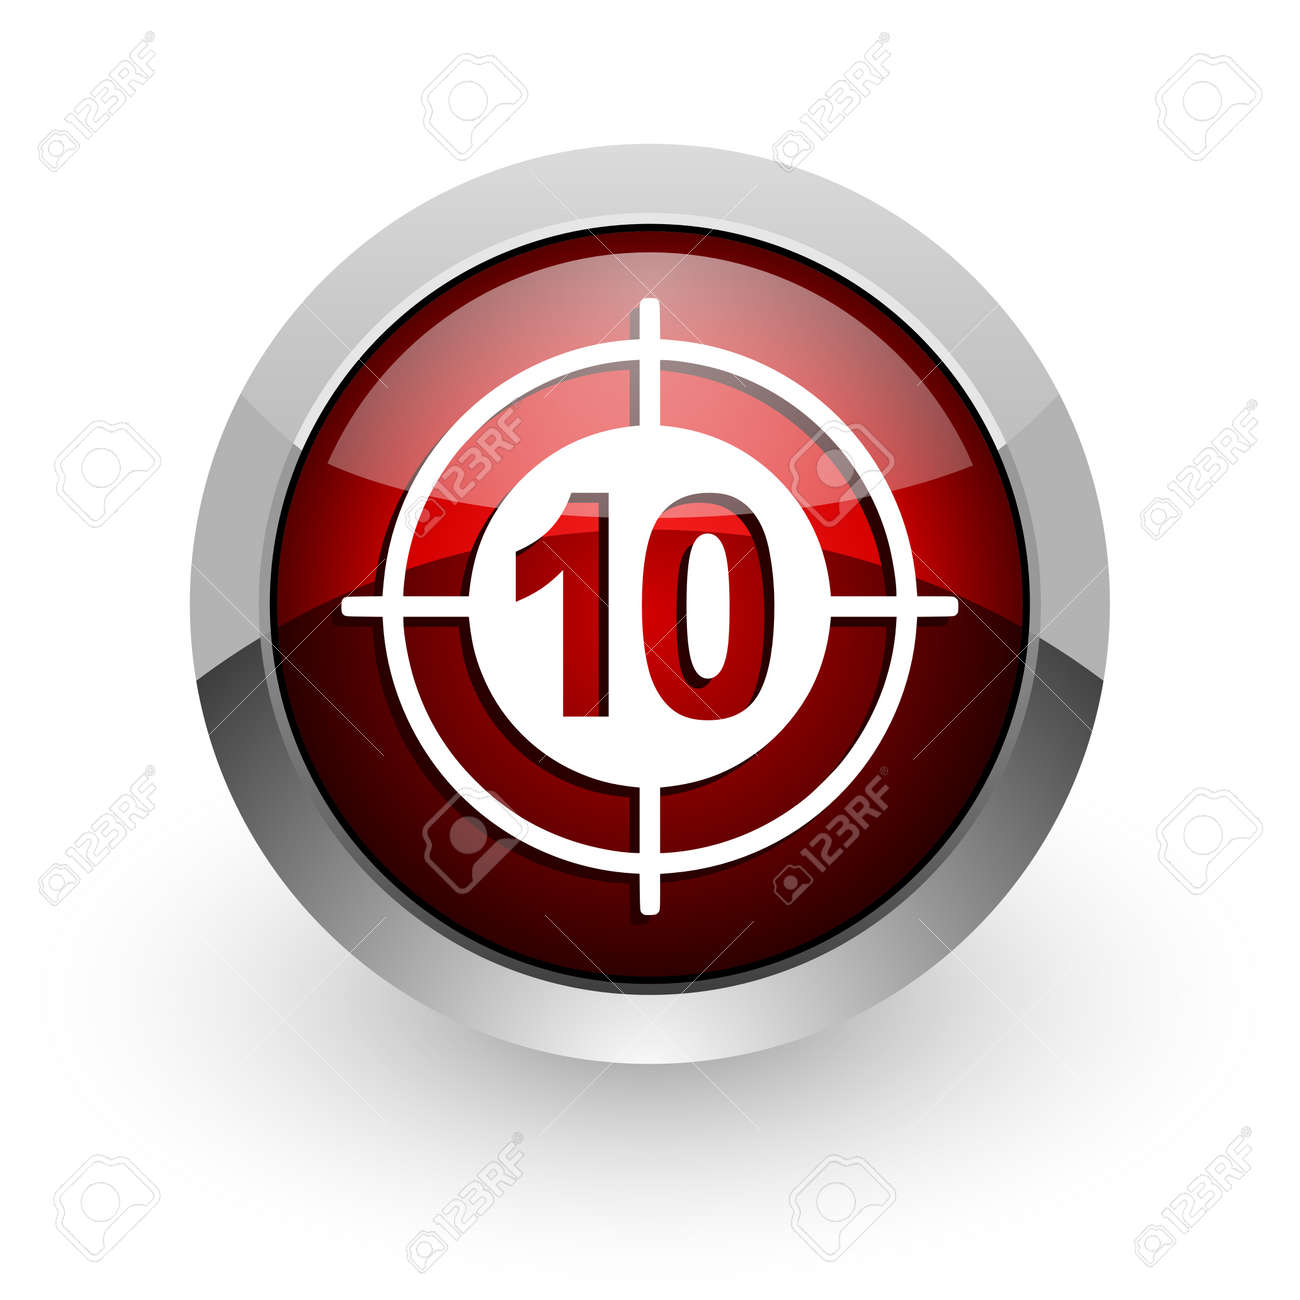 target red circle web glossy icon Stock Photo - 18579169